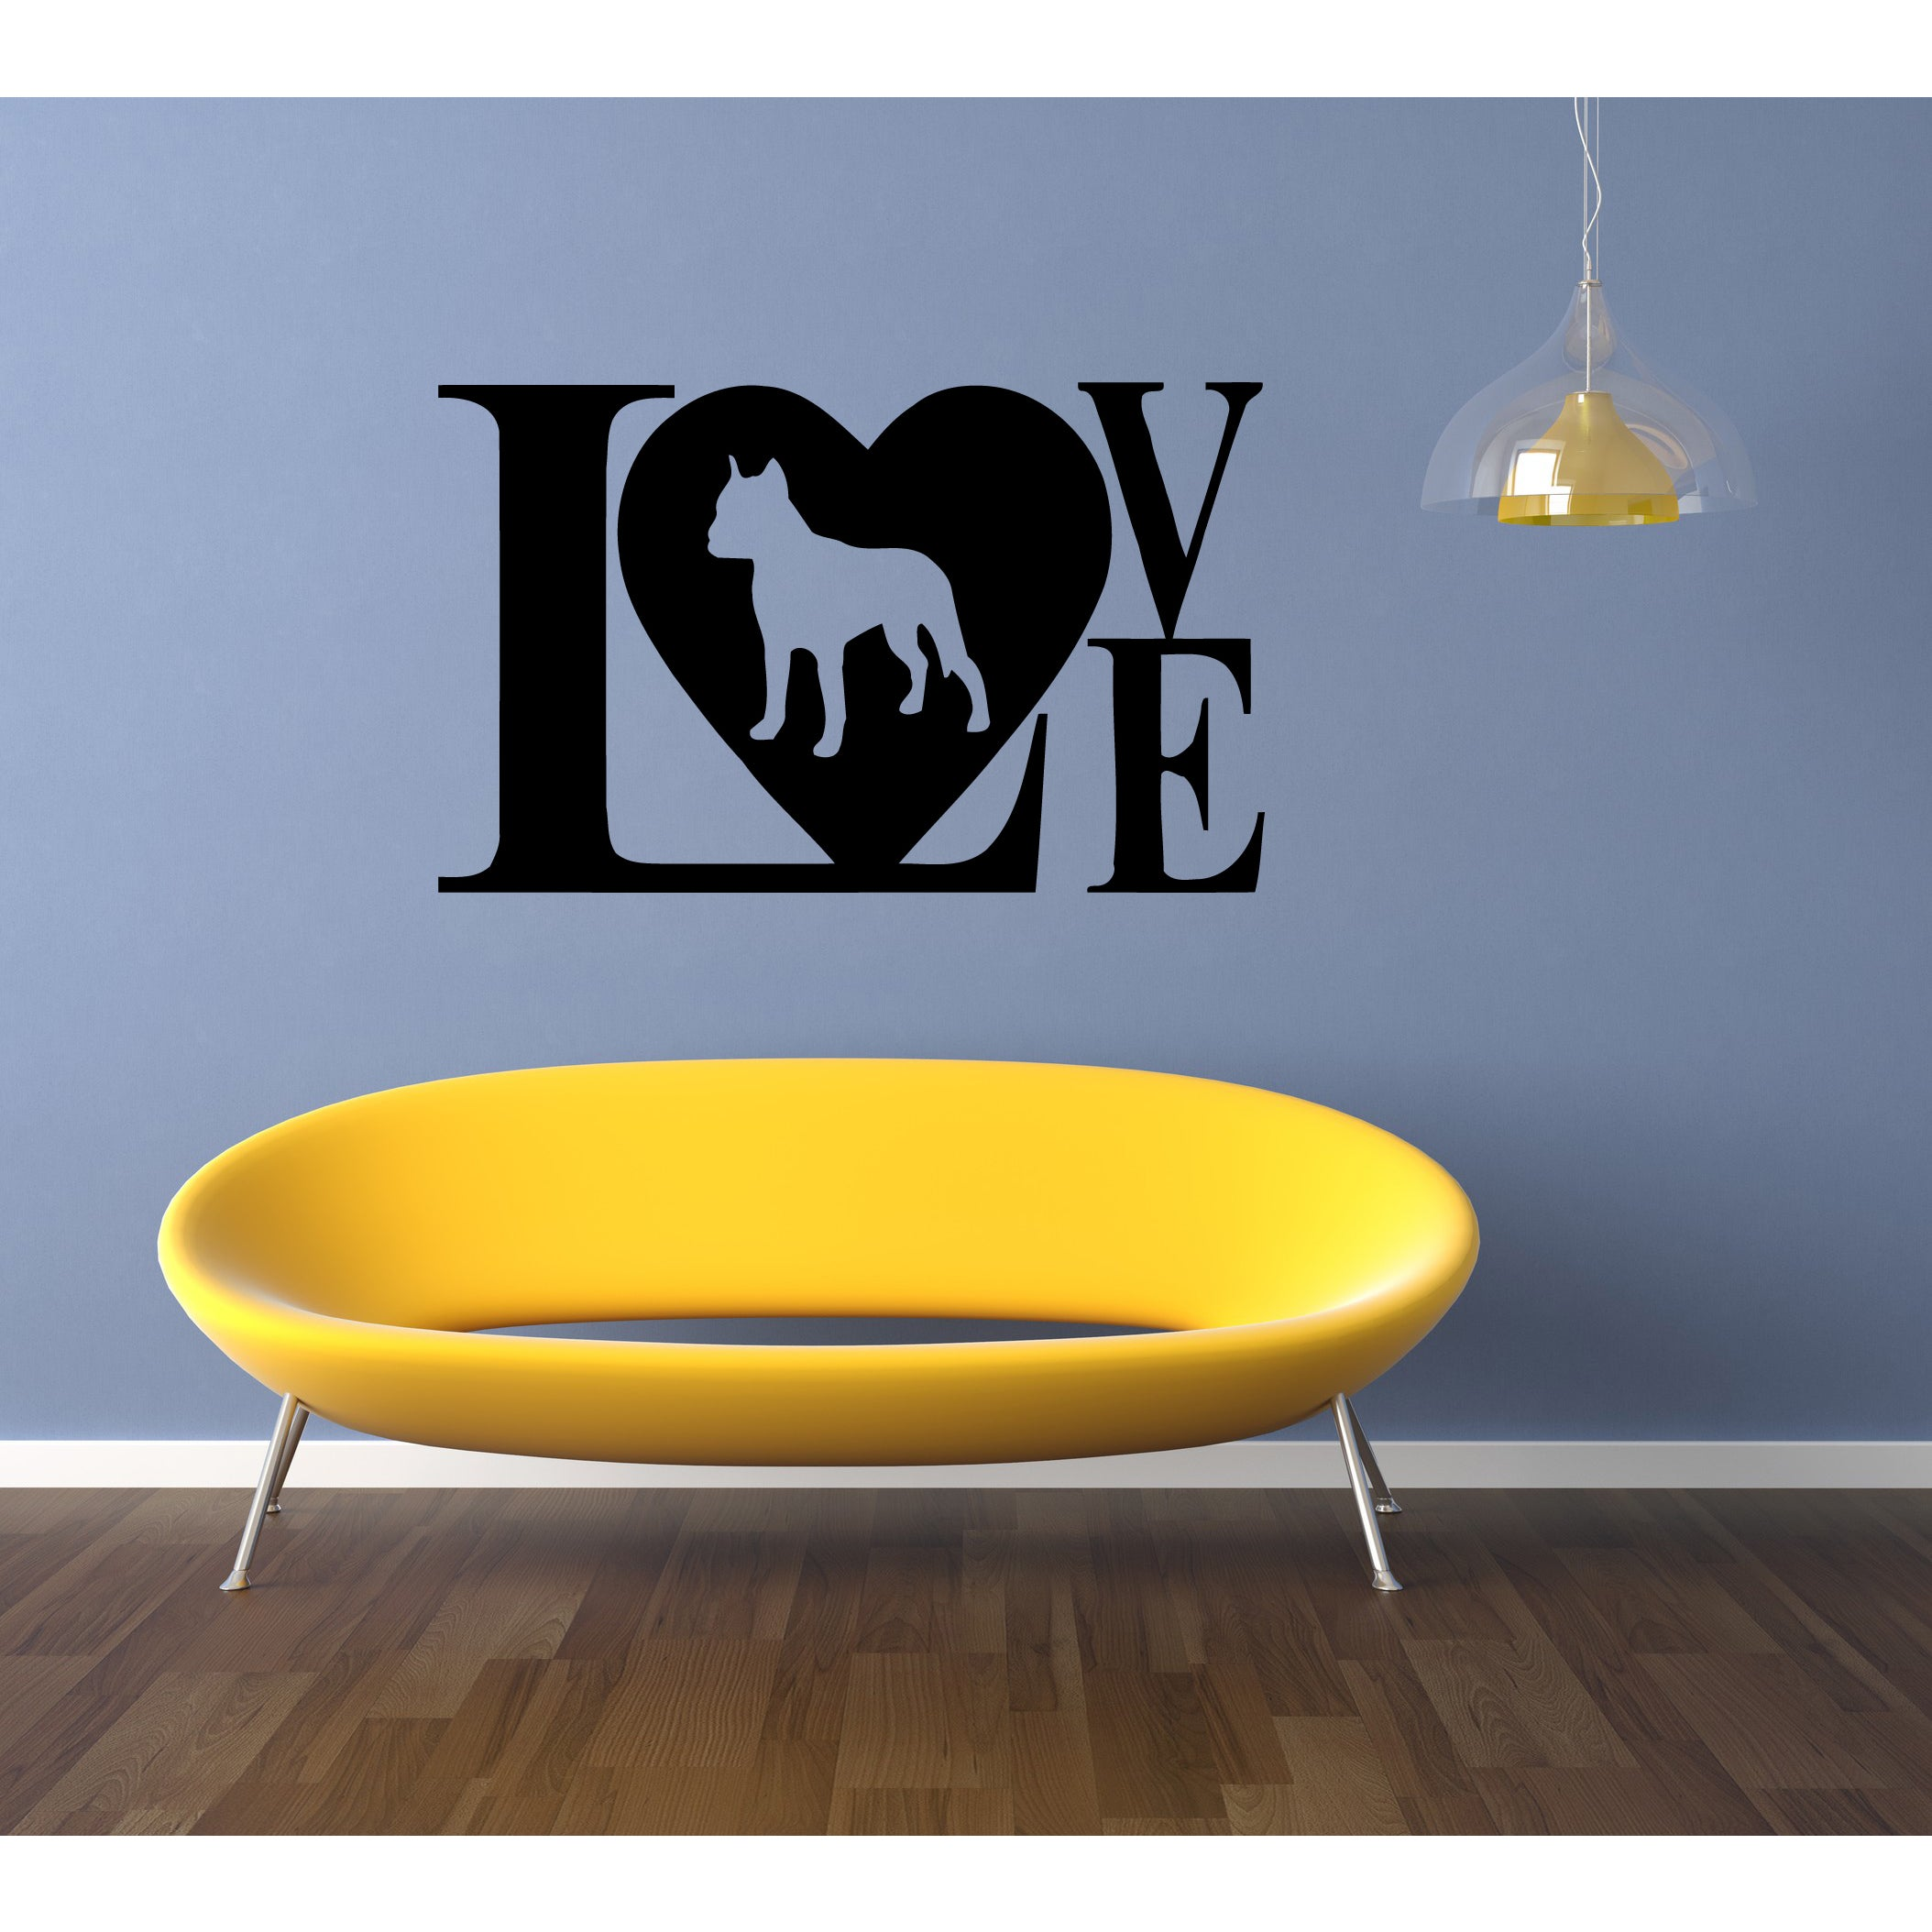 Pitbull Dog Puppy Breed Pet Love Wall Art Sticker Decal | eBay